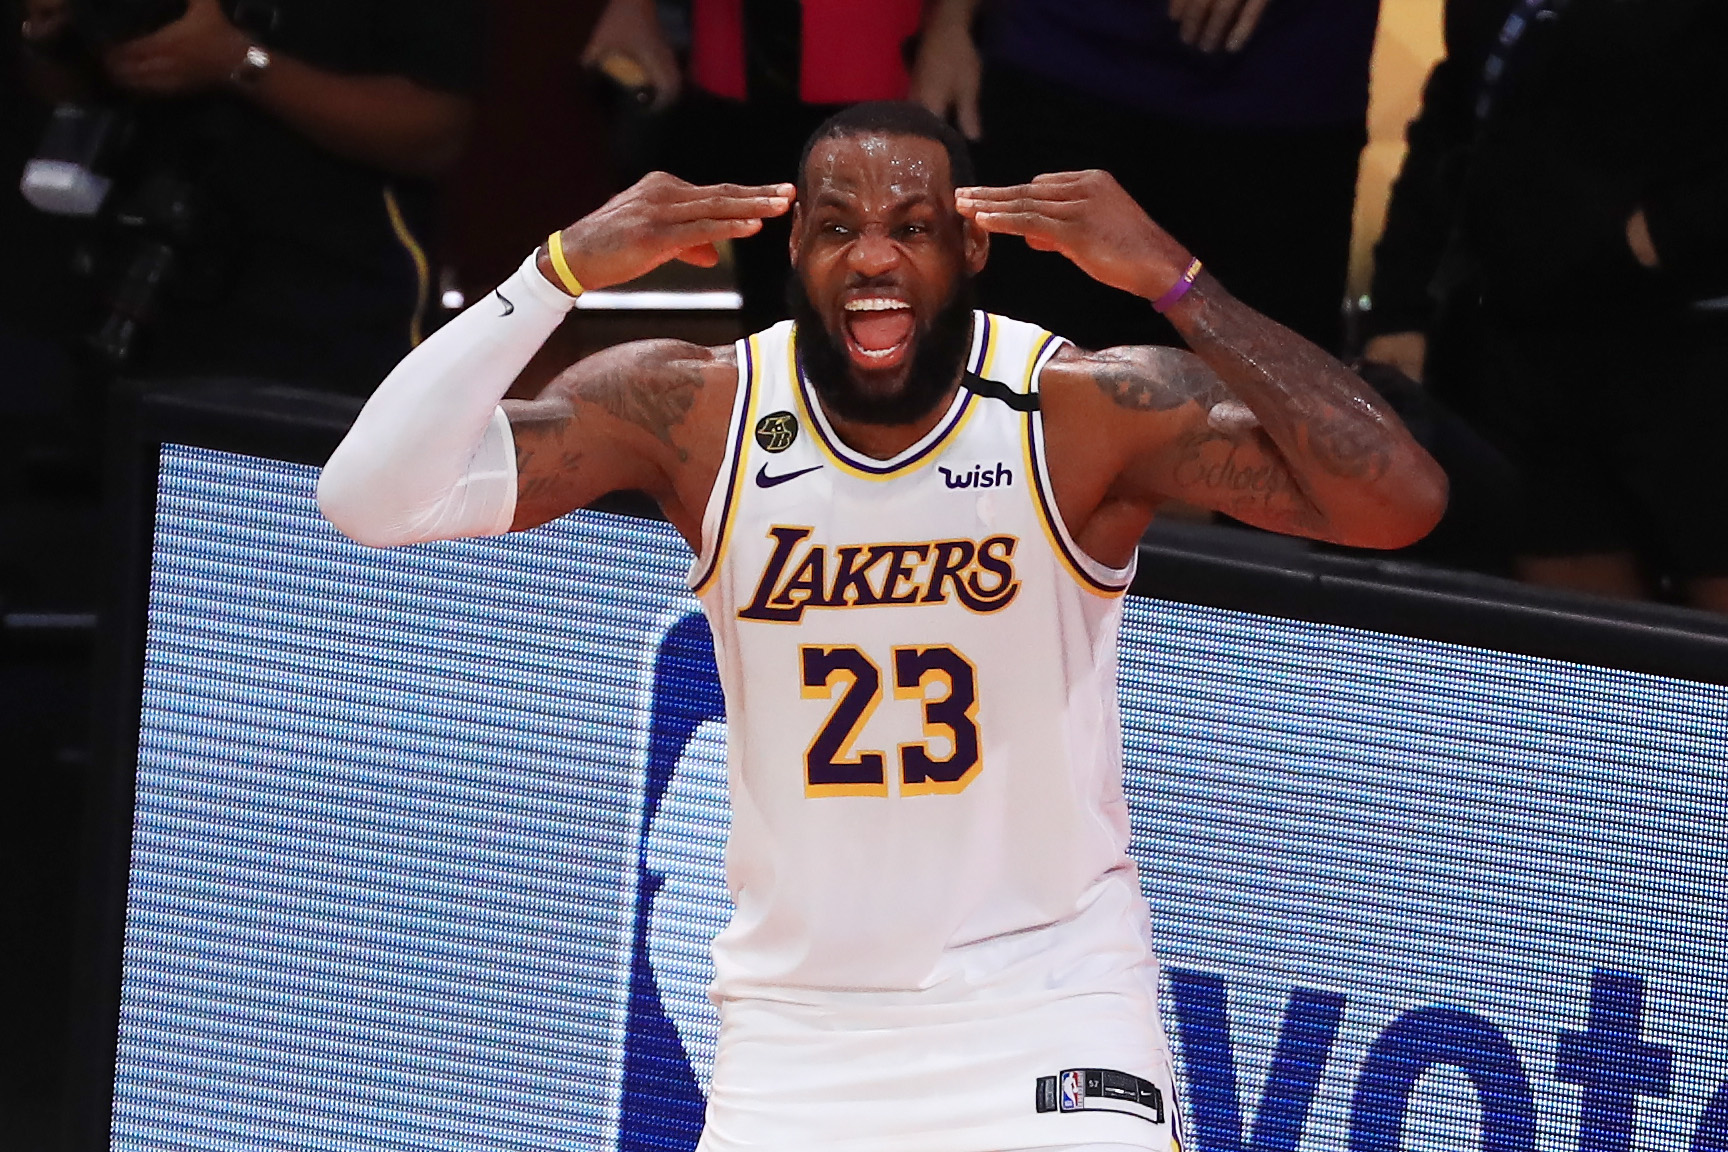 Los Angeles Lakers star forward LeBron James won his fourth career NBA Finals and first with the Los Angeles Lakers.